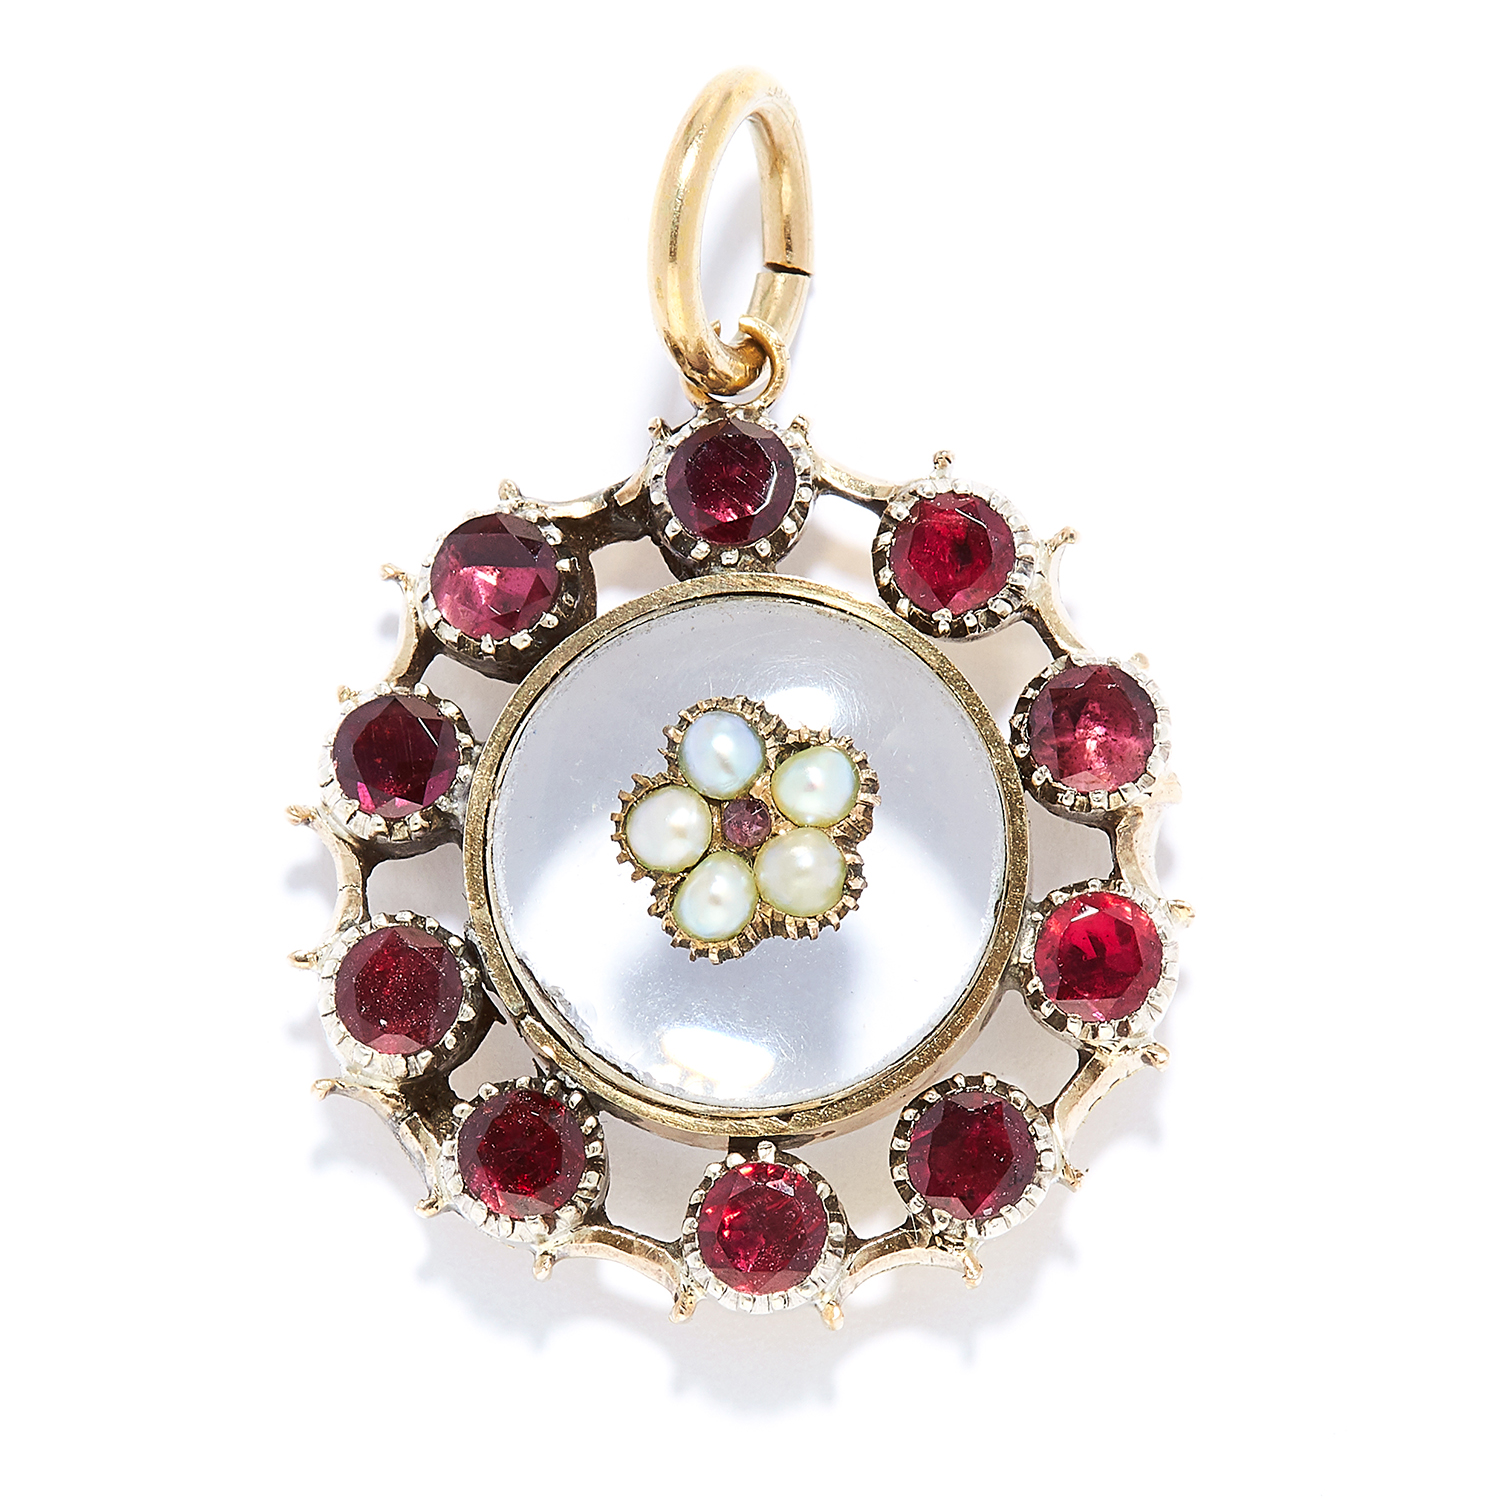 ANTIQUE GARNET, PEARL AND ROCK CRYSTAL PENDANT in high carat yellow gold, comprising of a cabochon